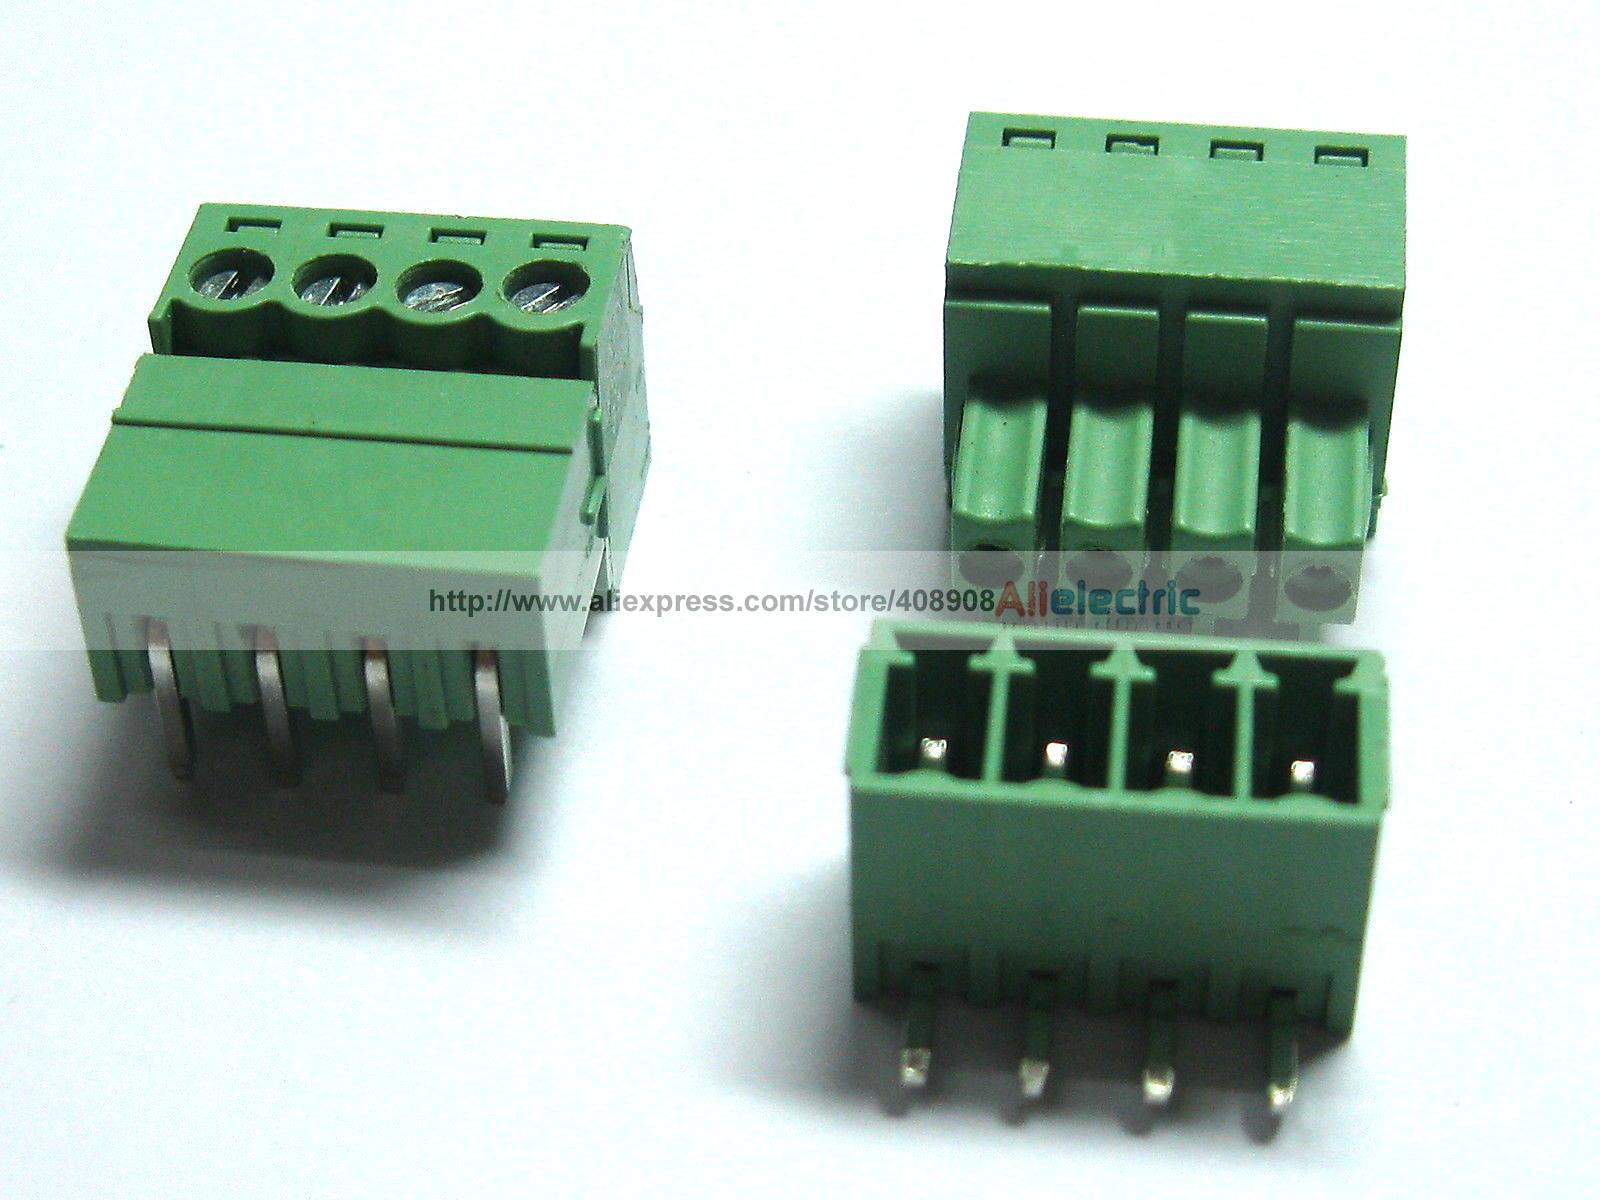 150 Pcs/lot 4pin  Screw Terminal Block Connector 3.5mm Angle 4 Pin Green Pluggable Type